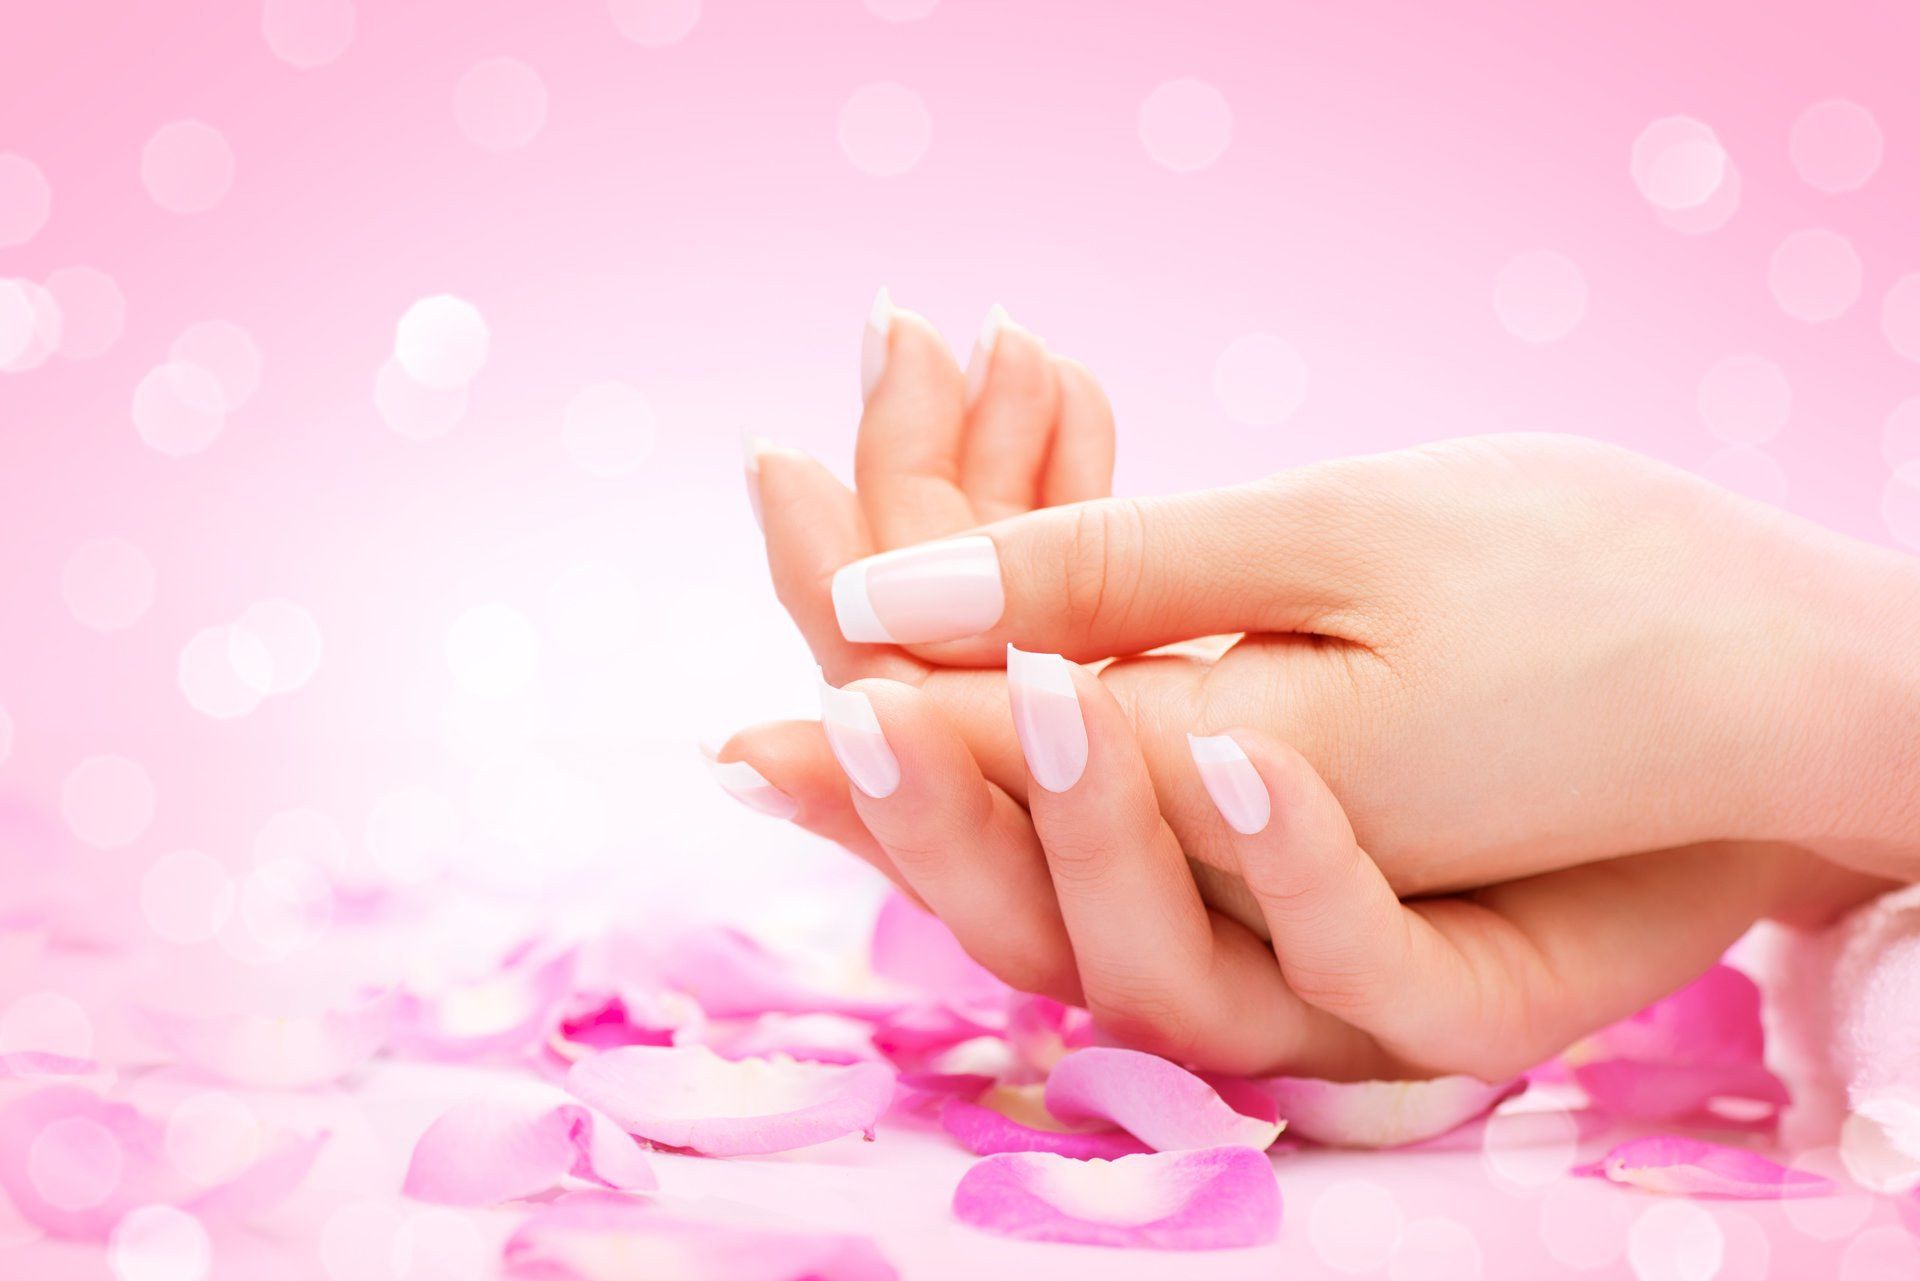 Acrylic nails work at our salon